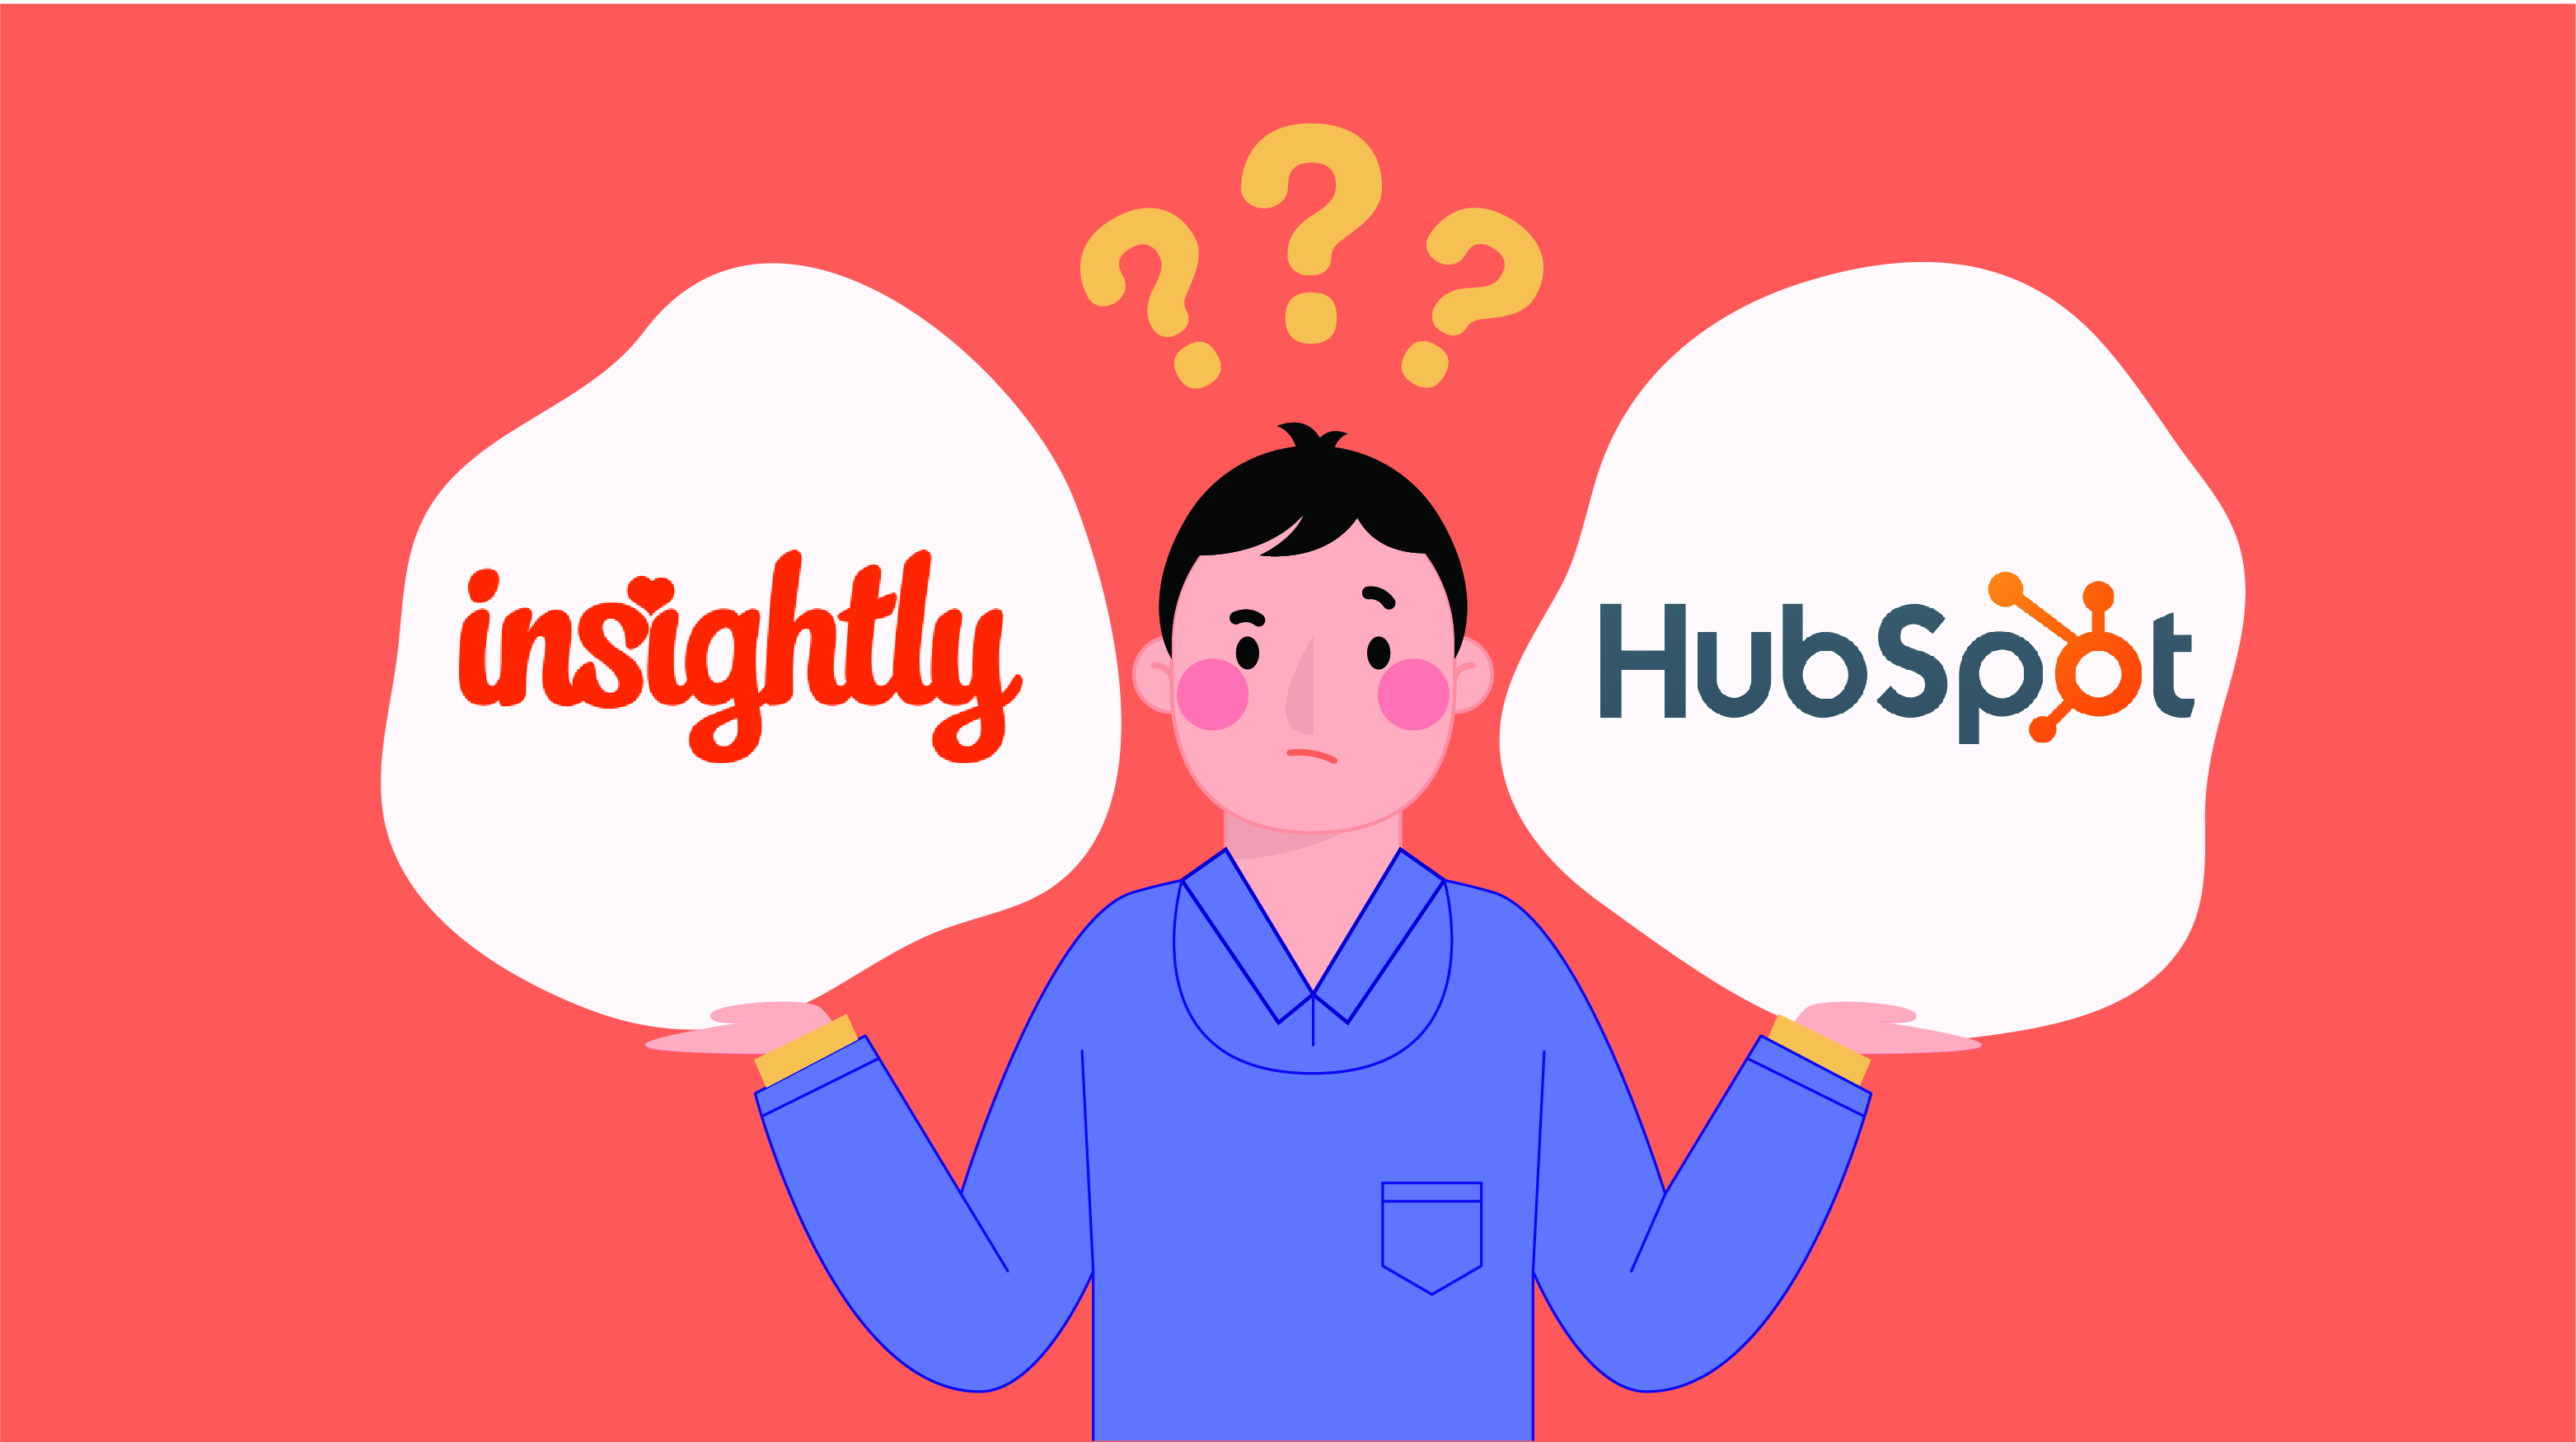 Everything You need to know about HubSpot Vs. Insightly